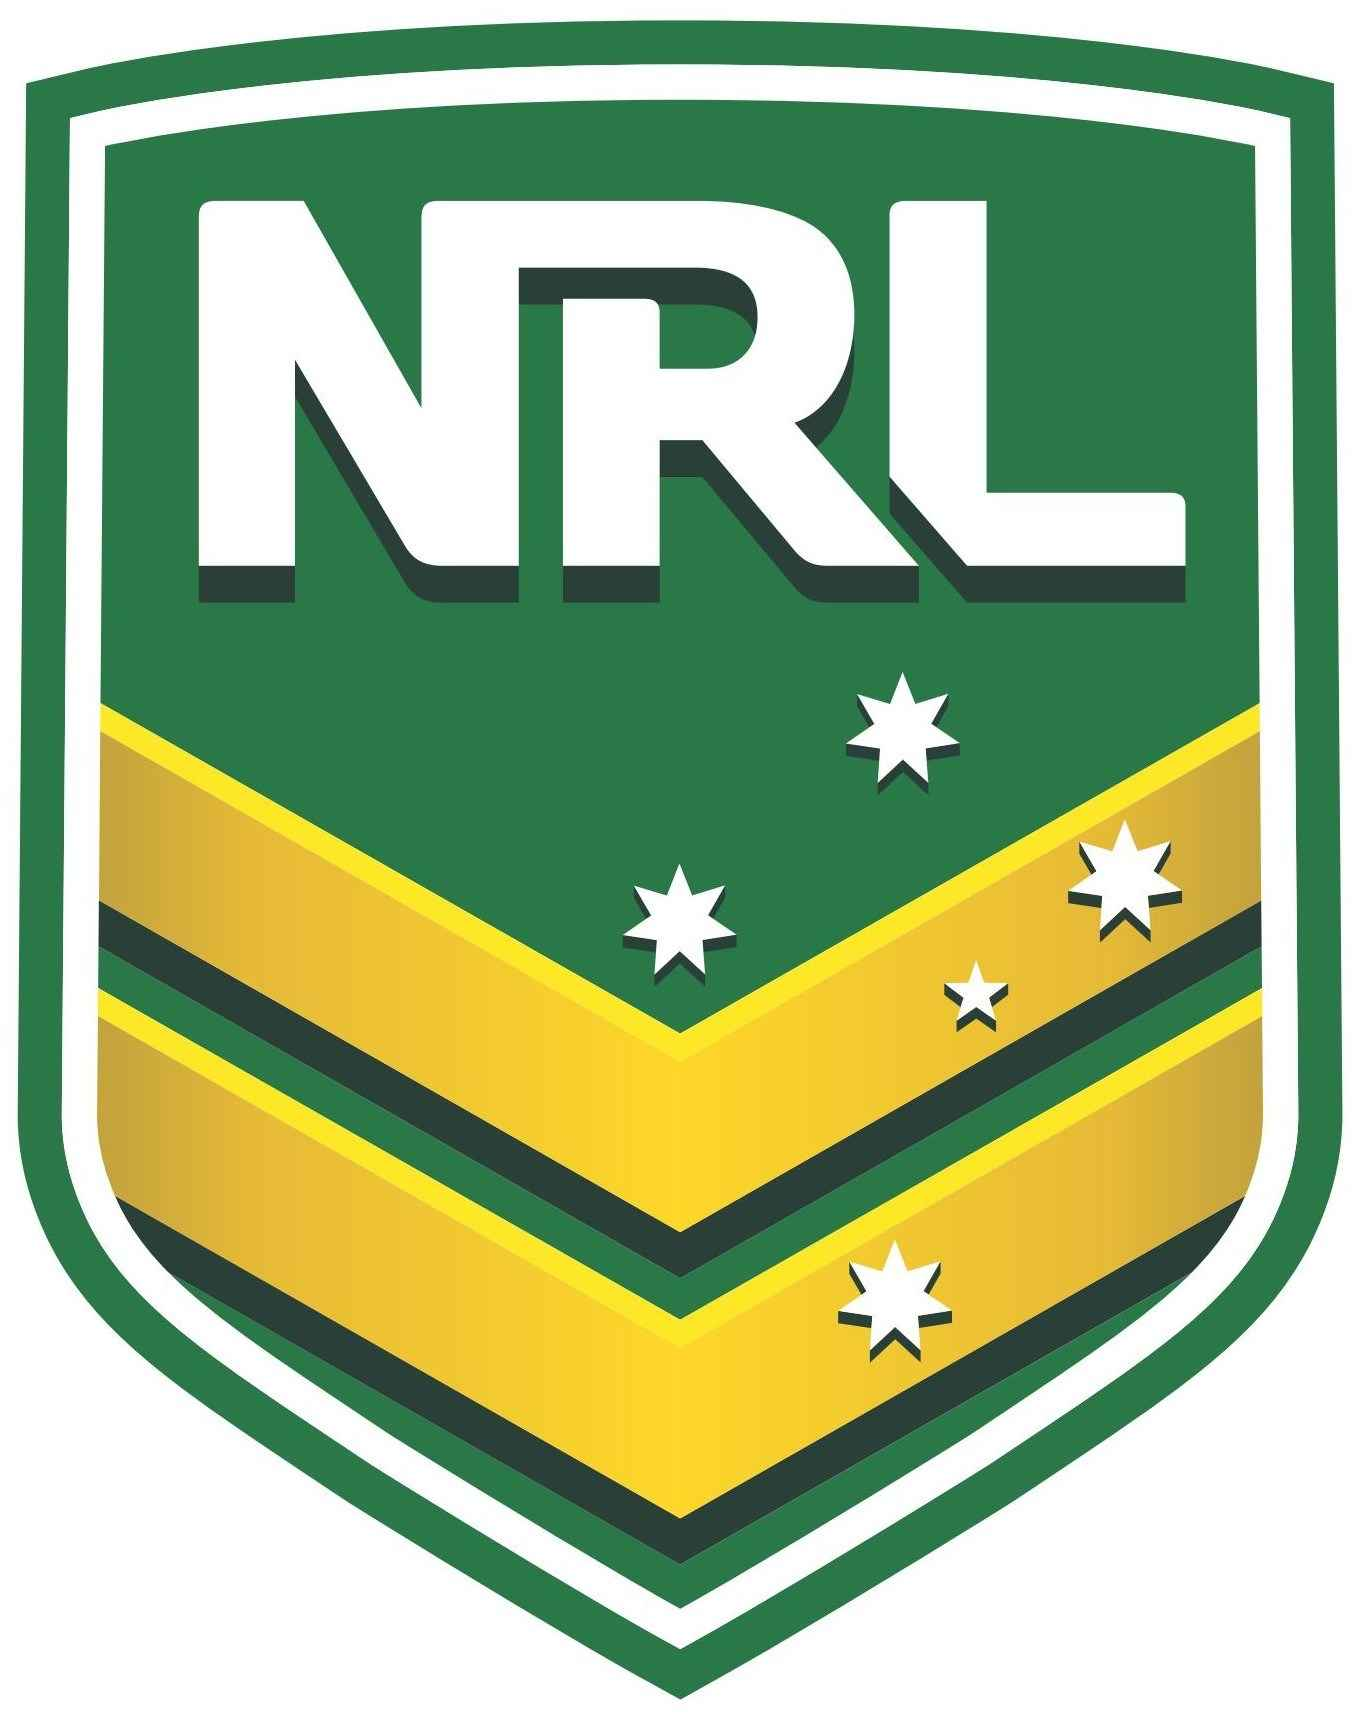 National_Rugby_League_logo